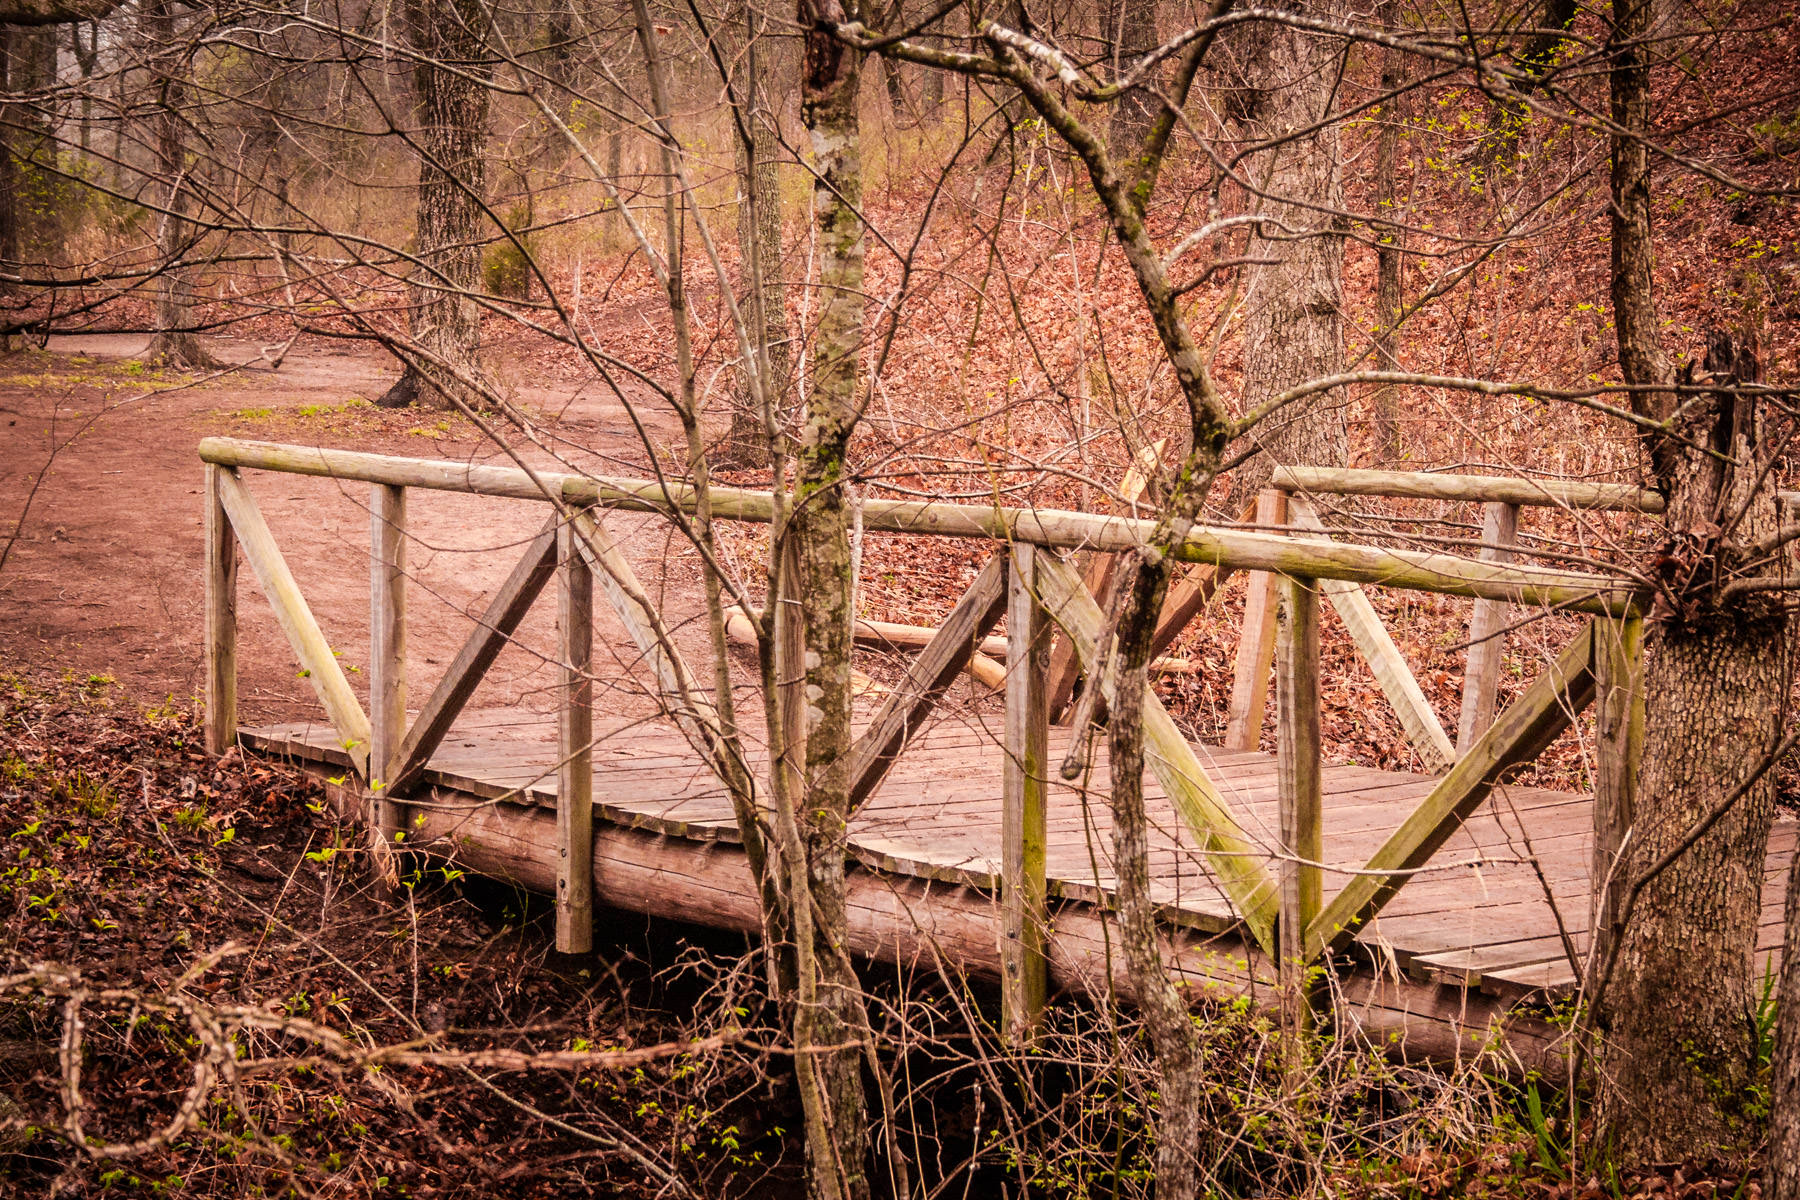 An old wooden footbridge at Turner Falls Park, Oklahoma.